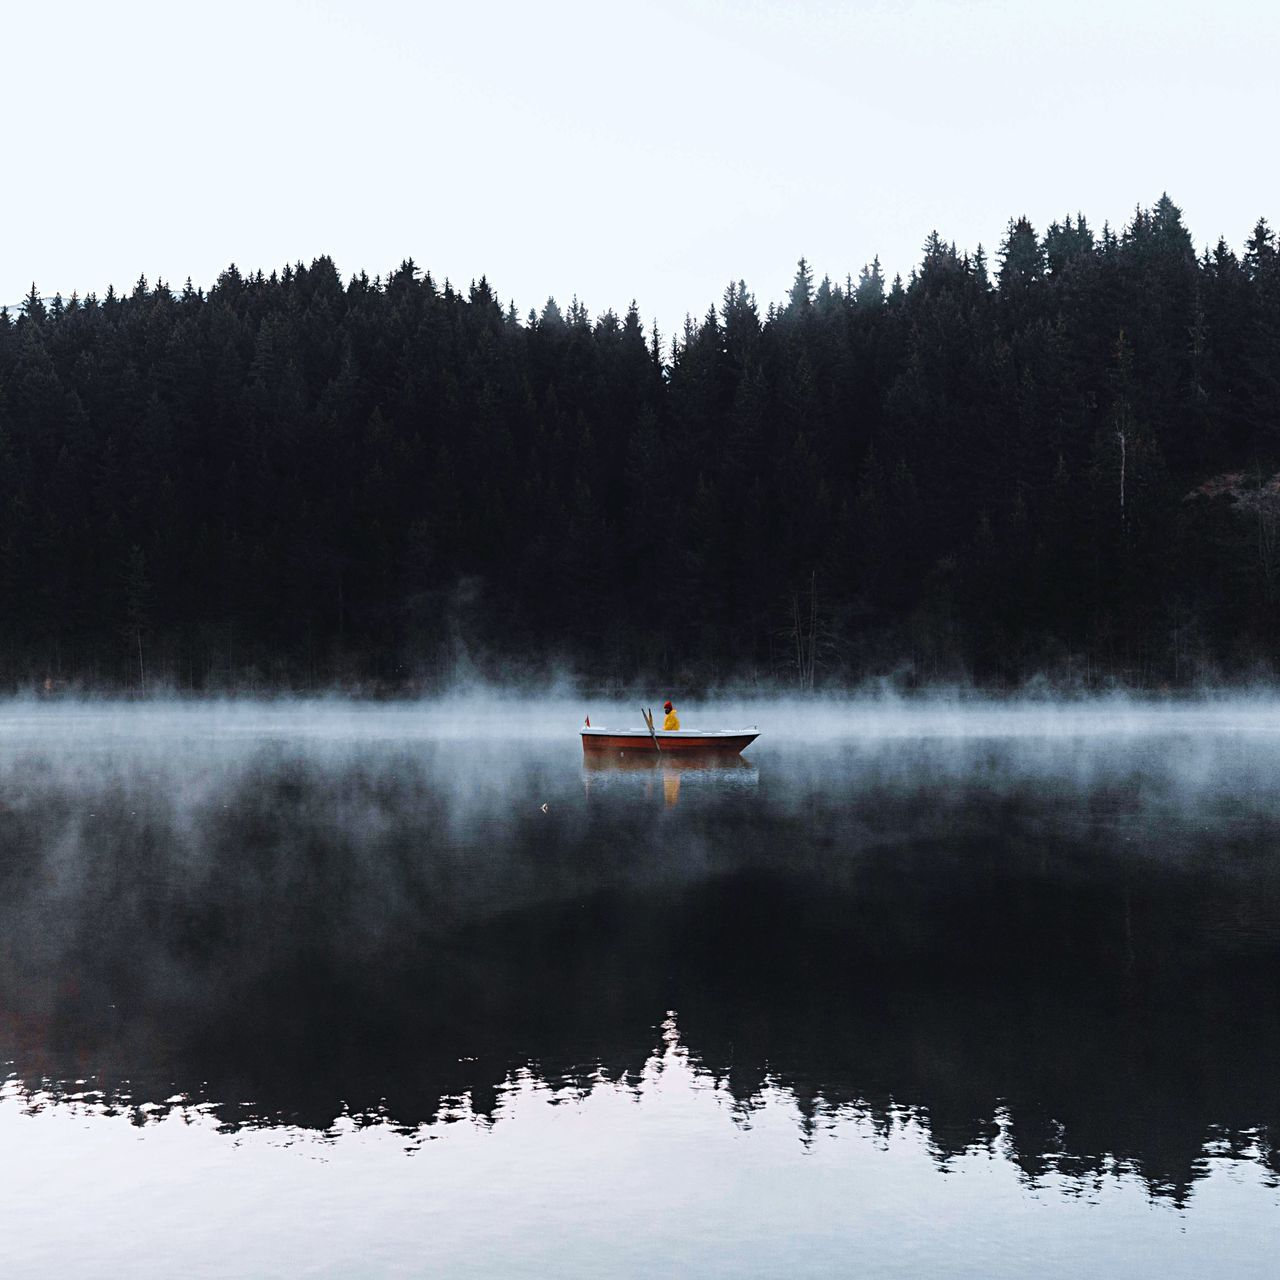 Man Boating On Lake Against Trees During Foggy Weather